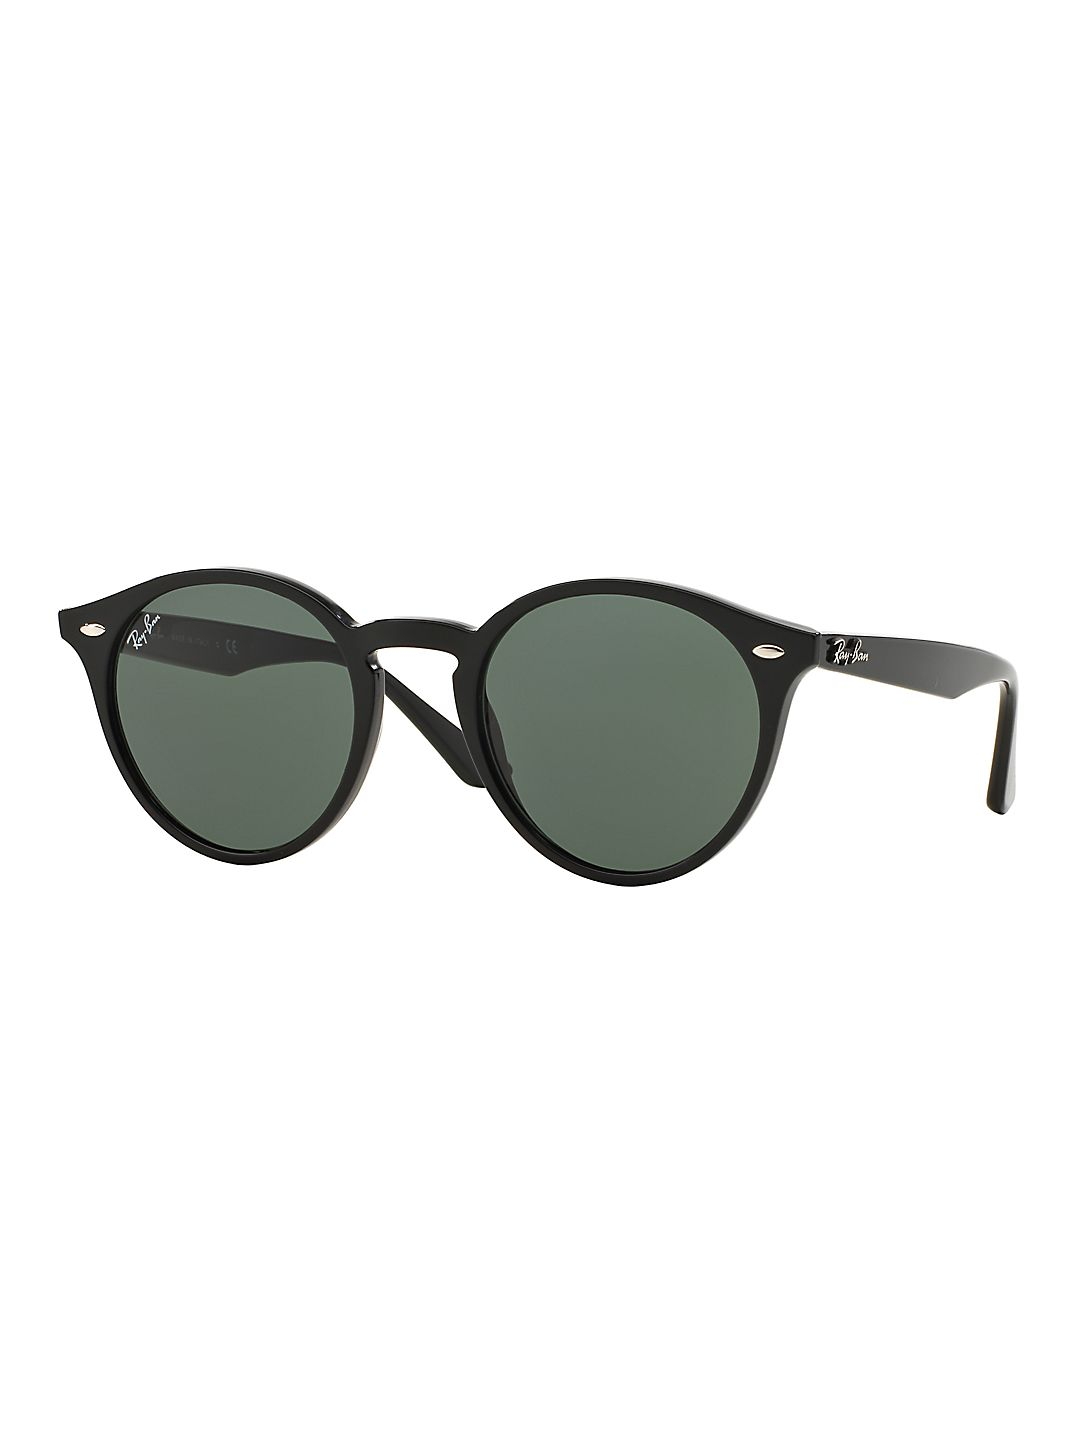 Ray-Ban Unisex RB2180 Round Sunglasses, 49mm